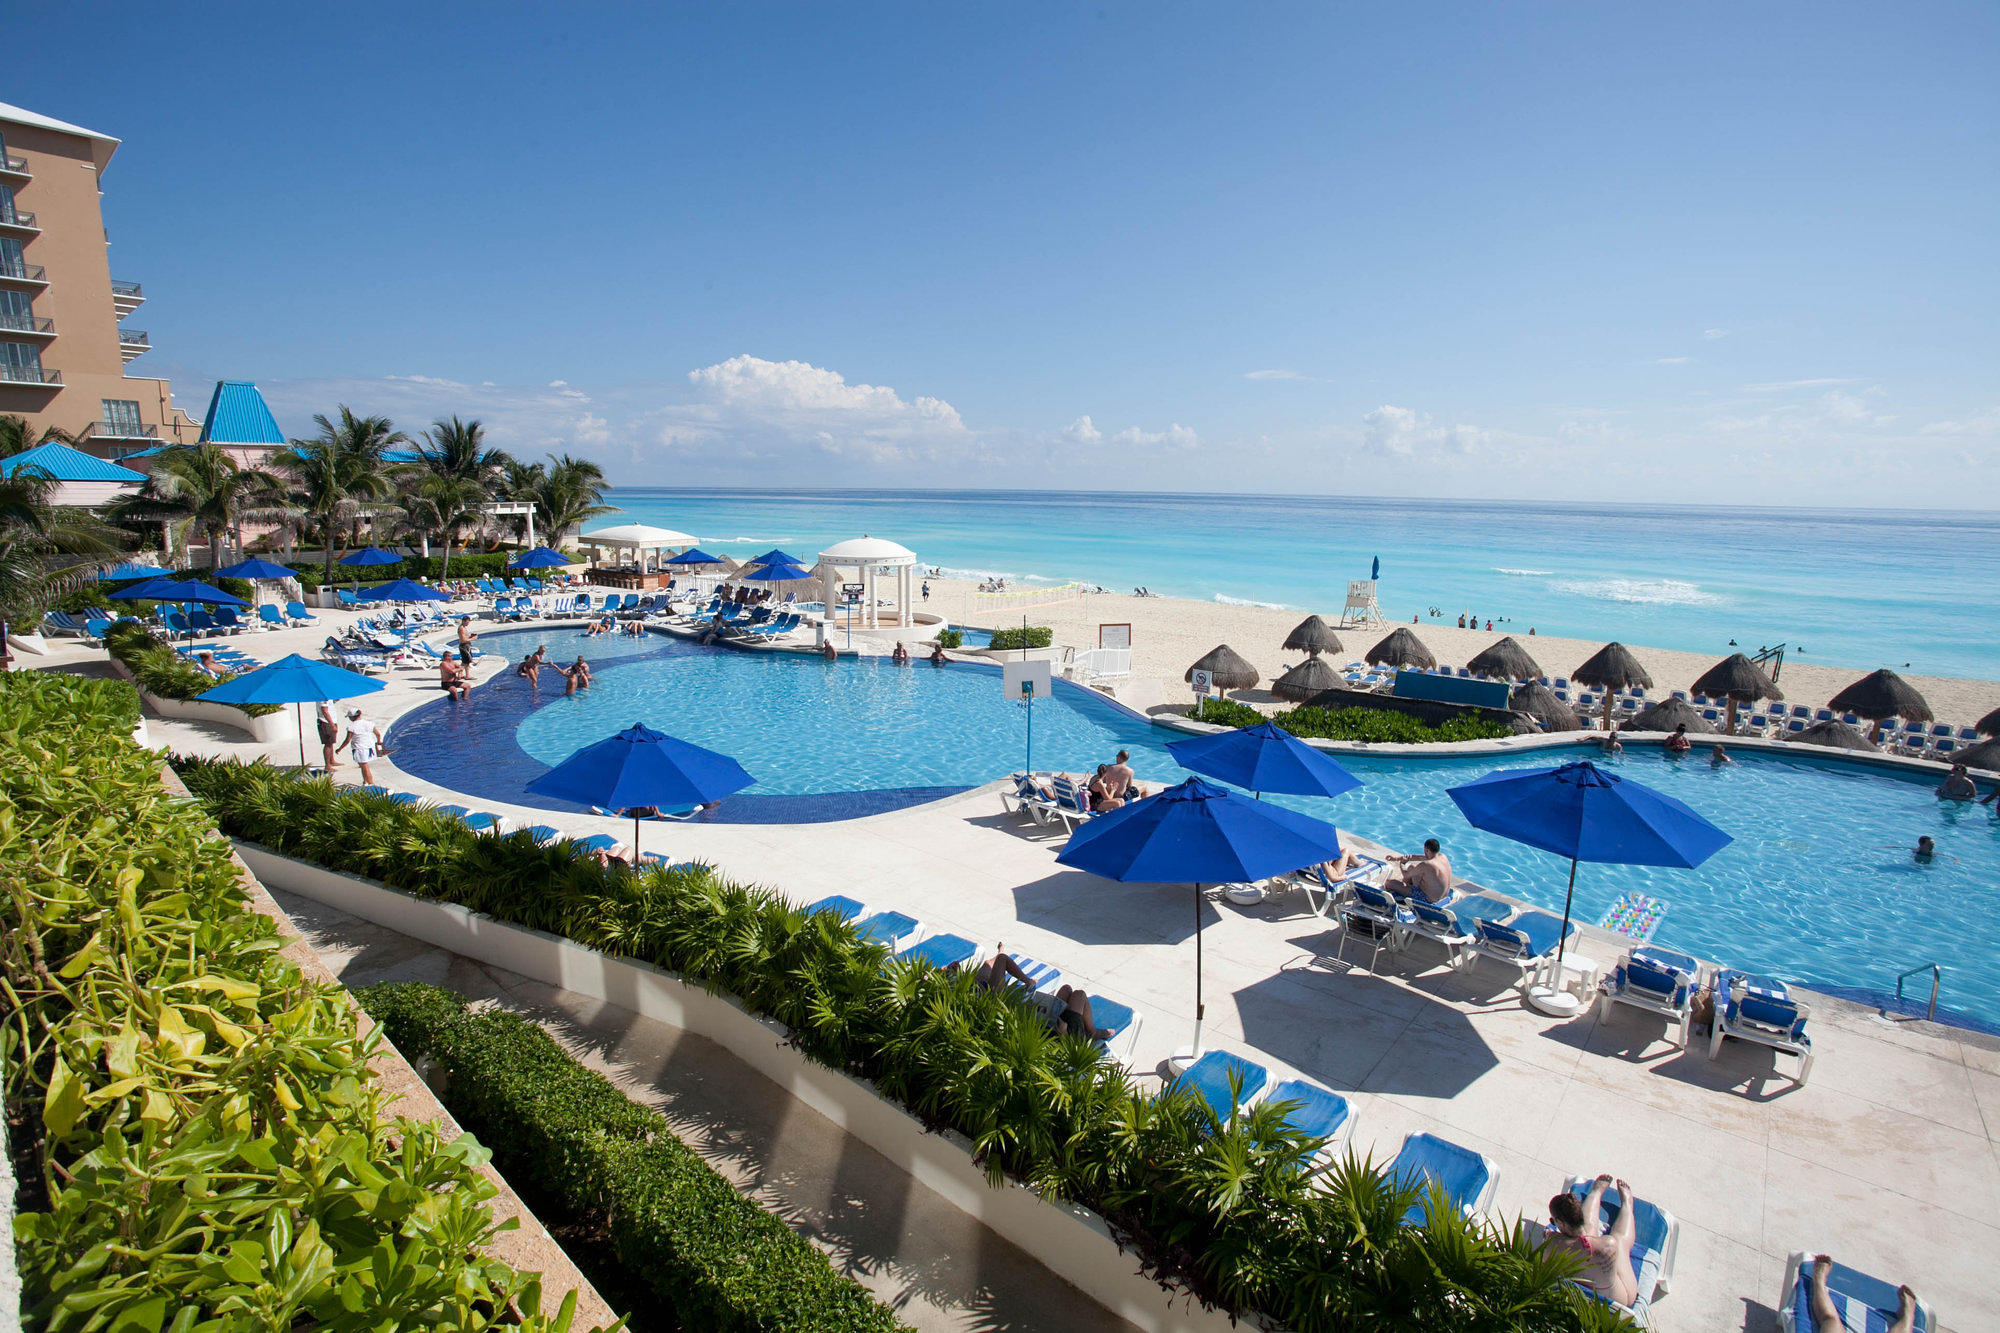 The pool at Golden Parnassus Cancun